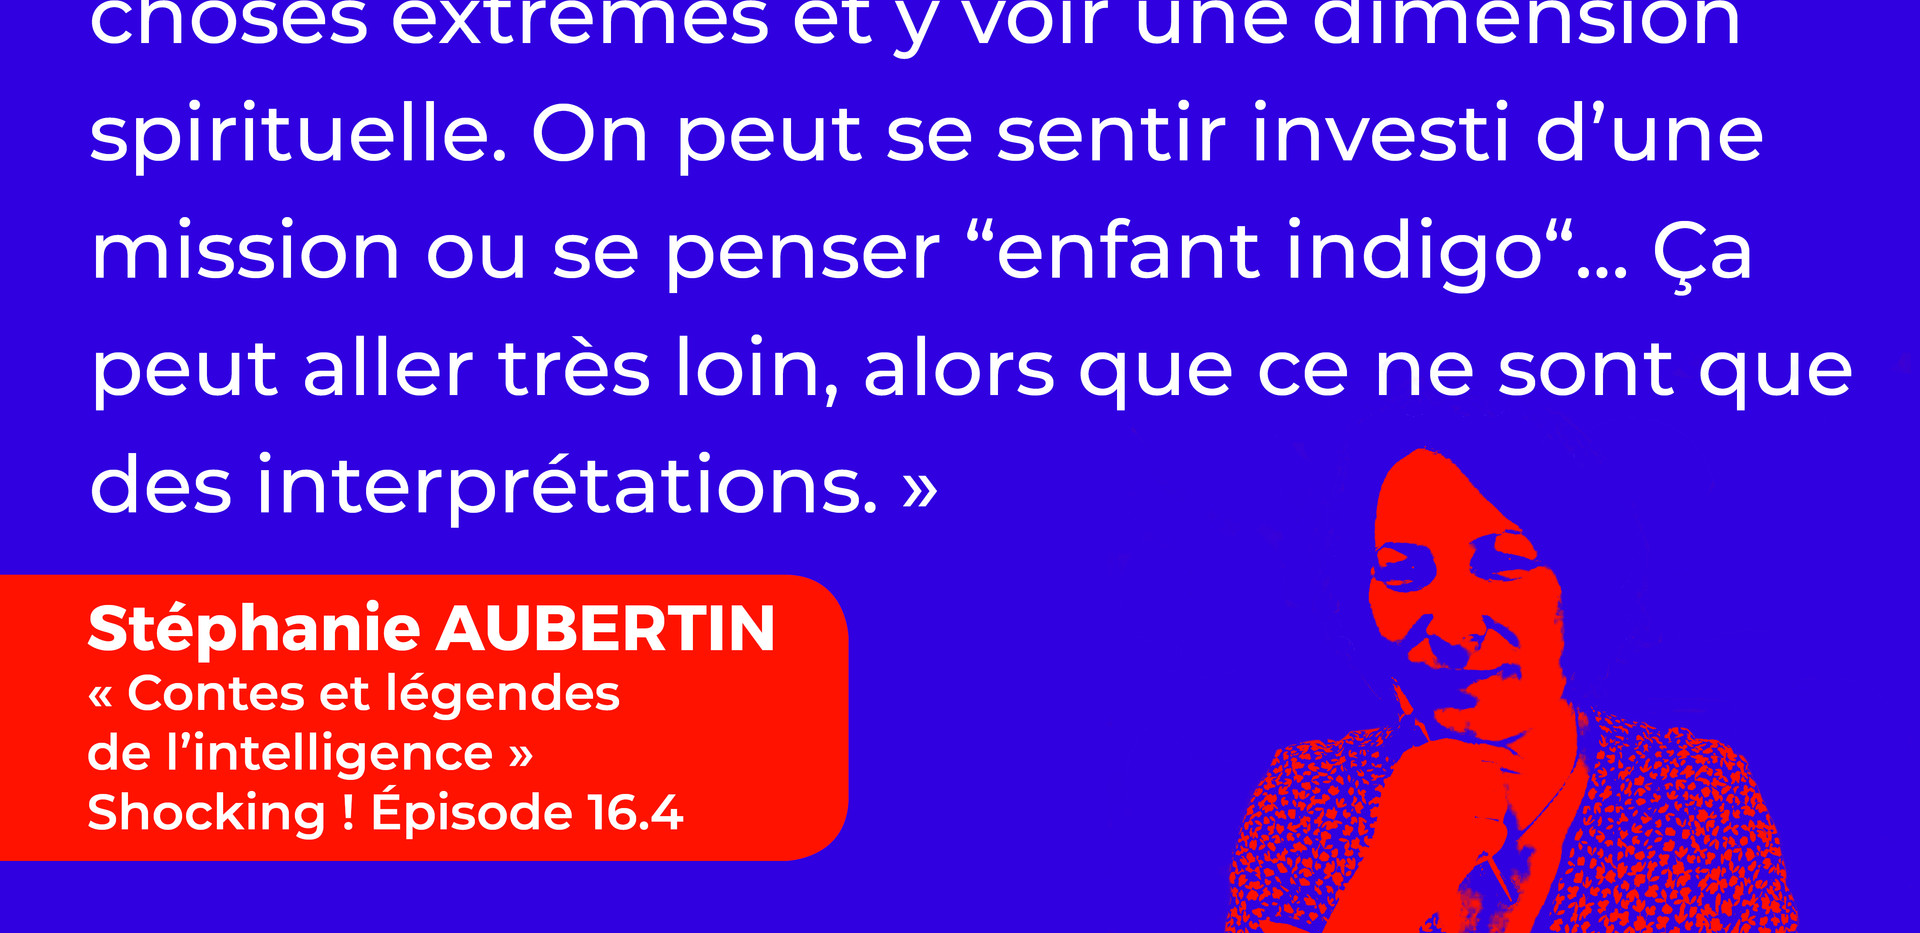 Attention aux interprétations pendant la méditation !